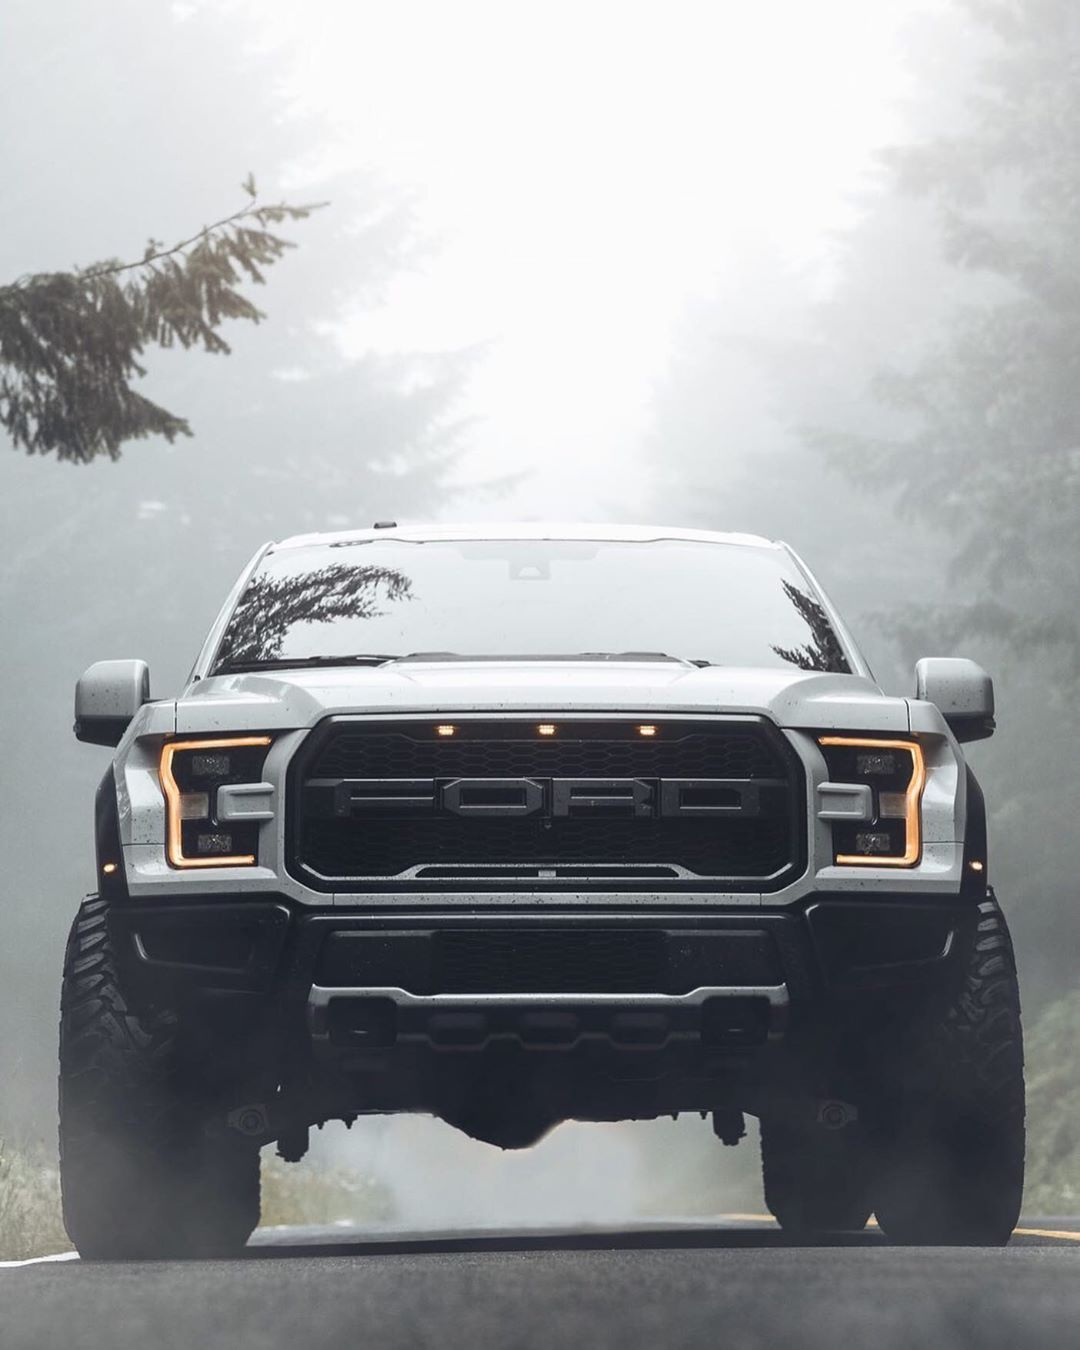 Raptoraddiction On Instagram Mystery Roads Aaronbhall Raptoraddiction Raptor Ford Raptor Best Luxury Cars Cars